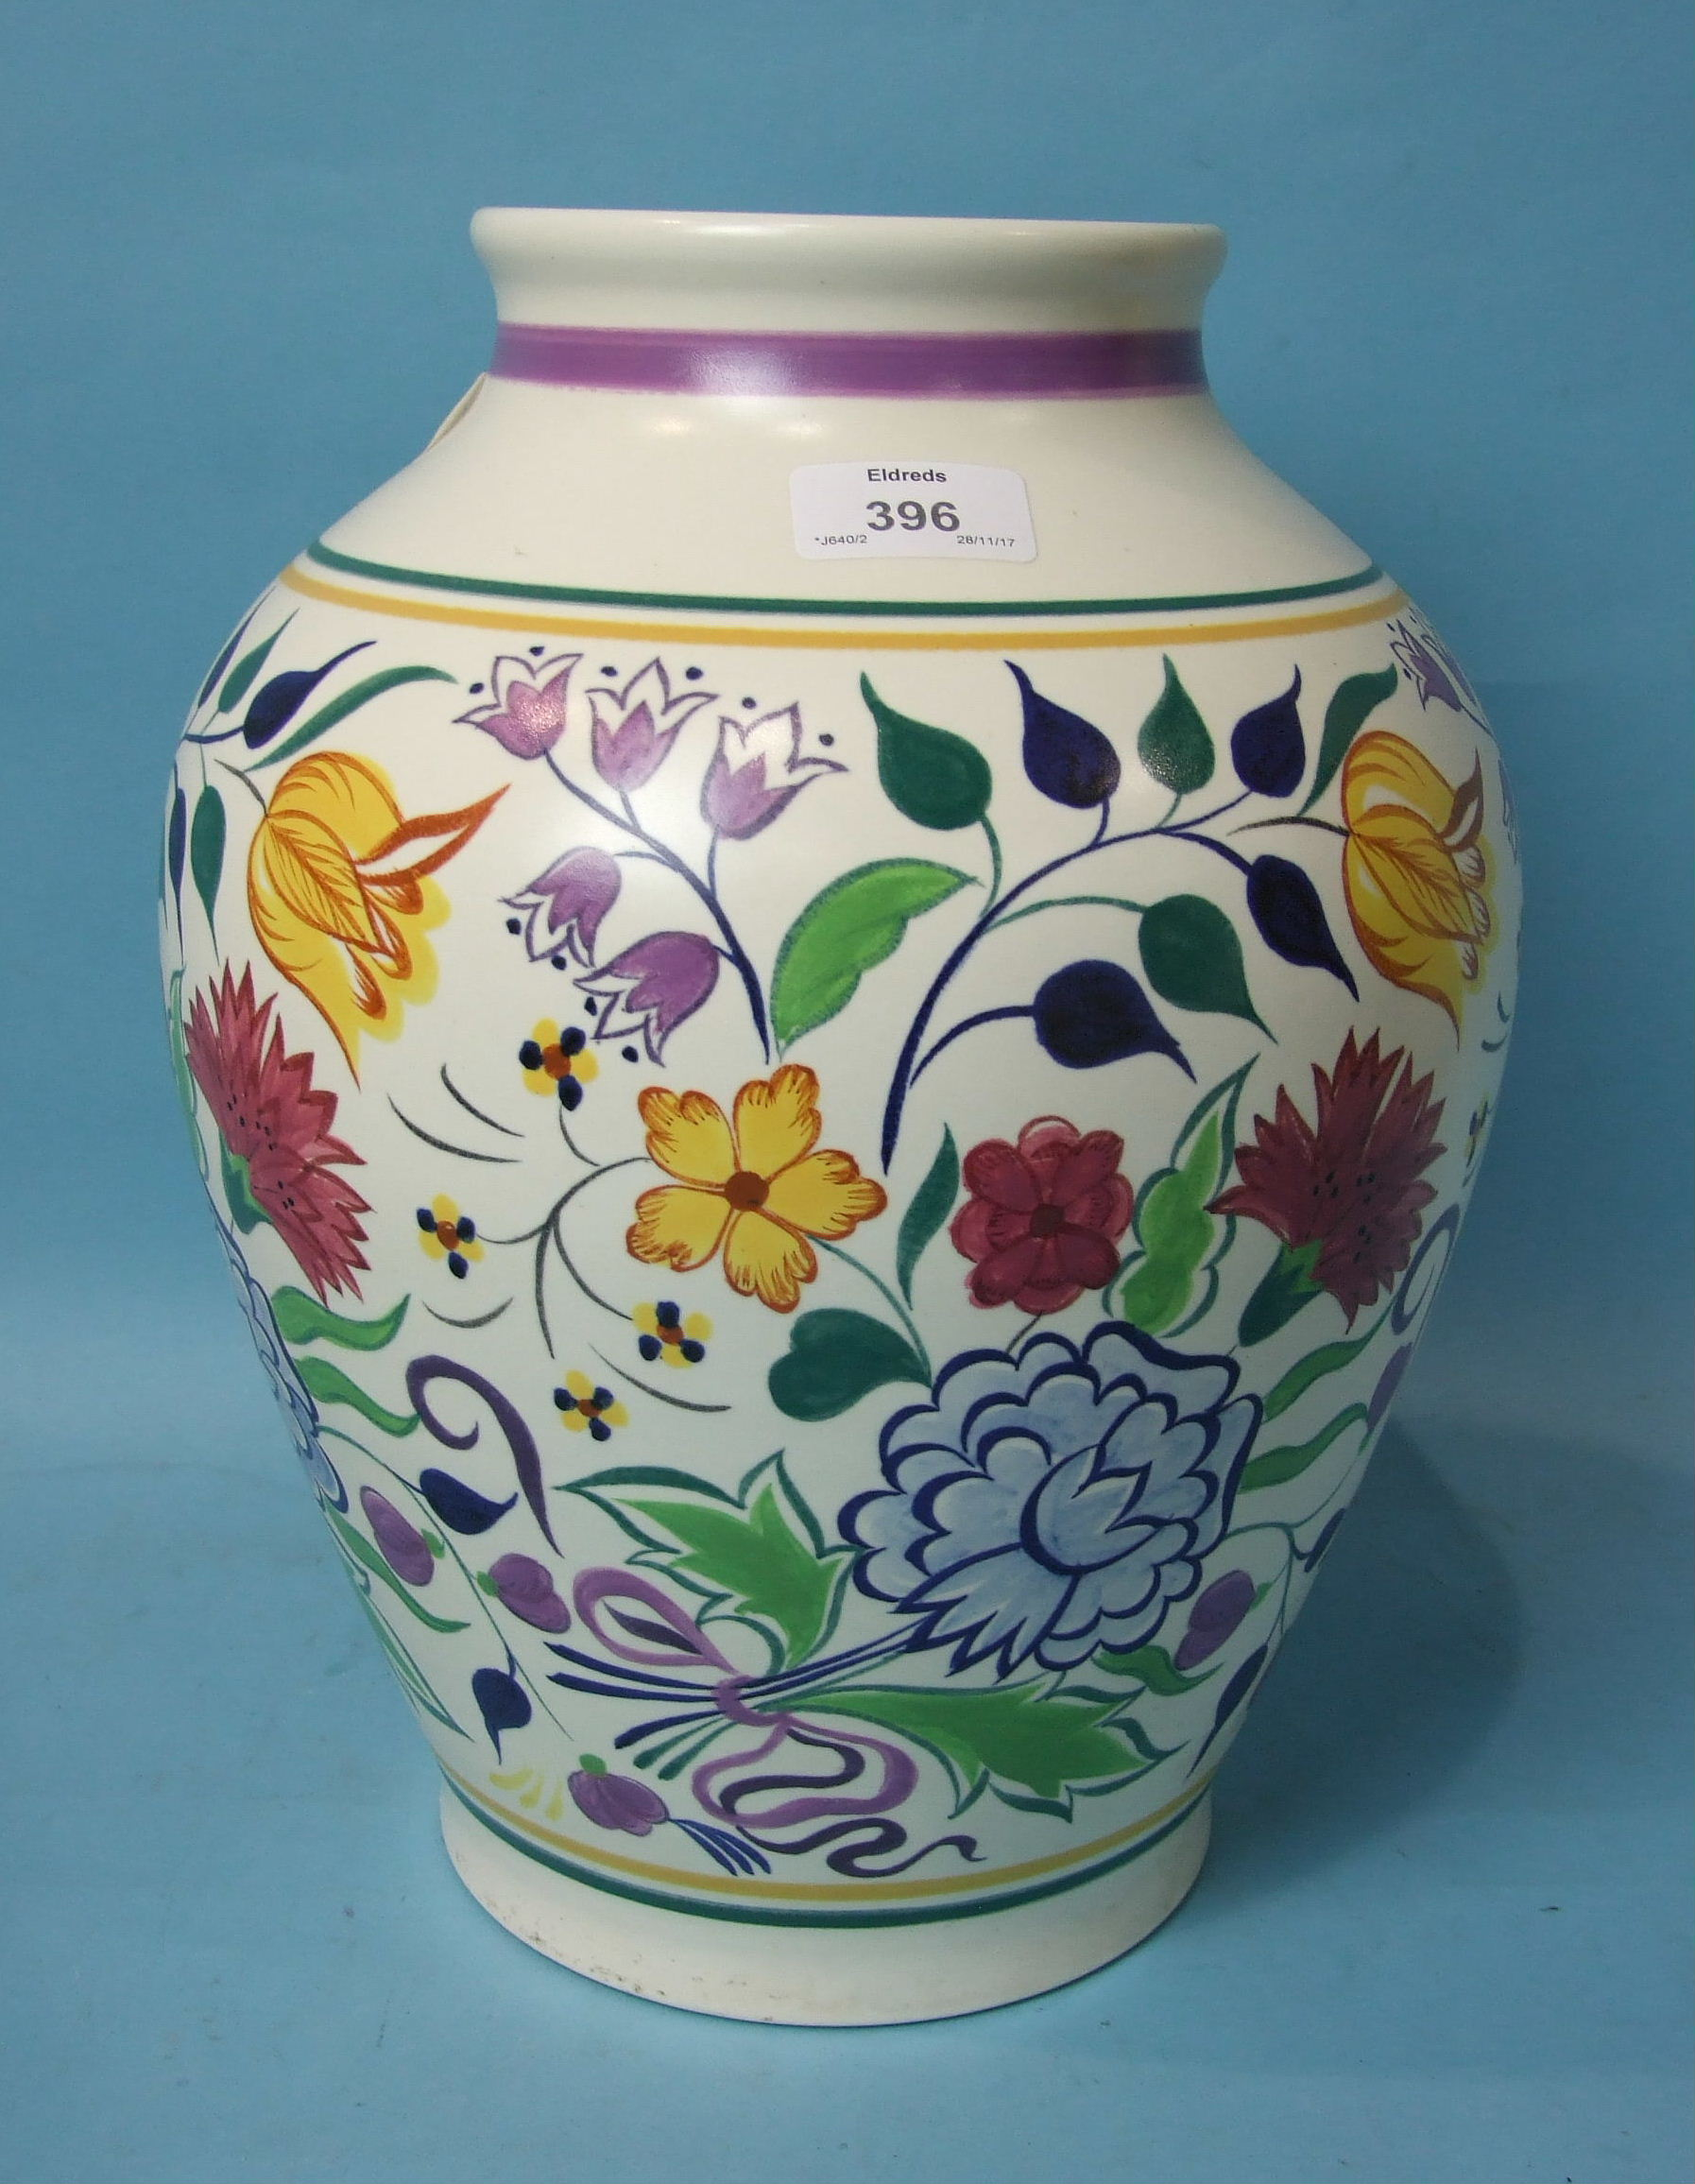 Lot 396 - A large Poole Pottery vase of ovoid form with polychrome painted decoration of stylised flowers